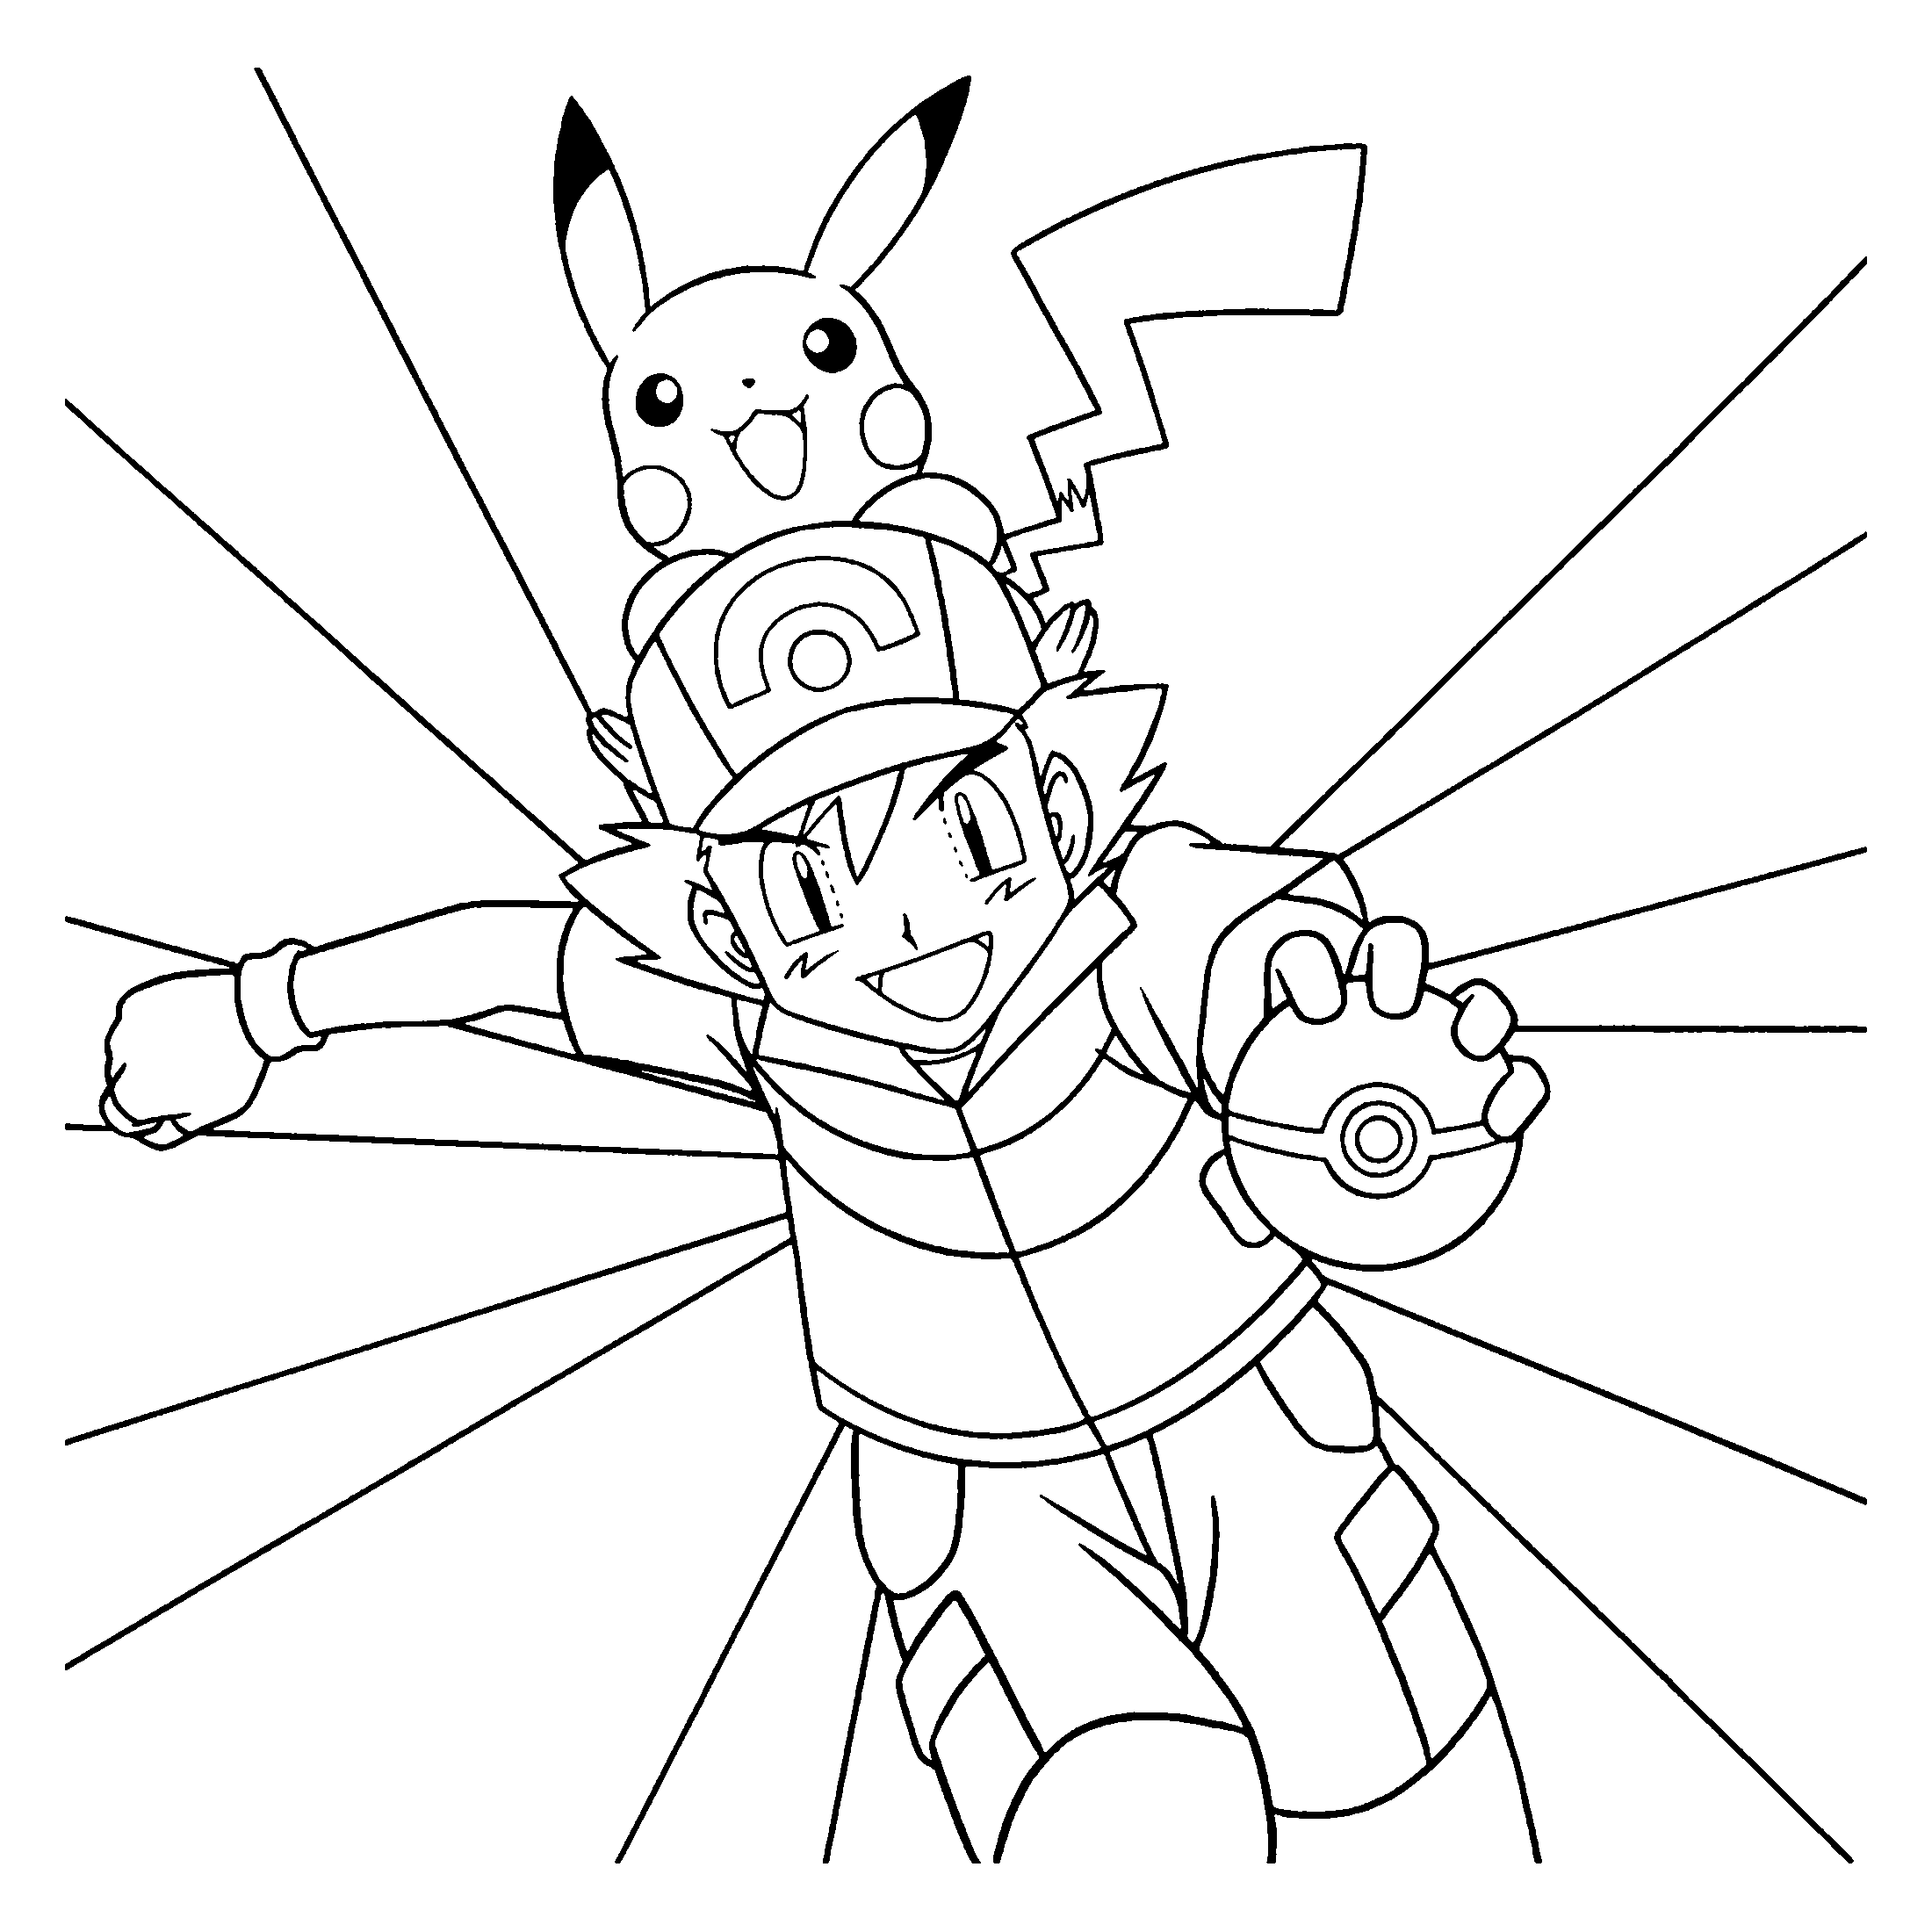 pakemon diamond pearl coloring pages - photo#48